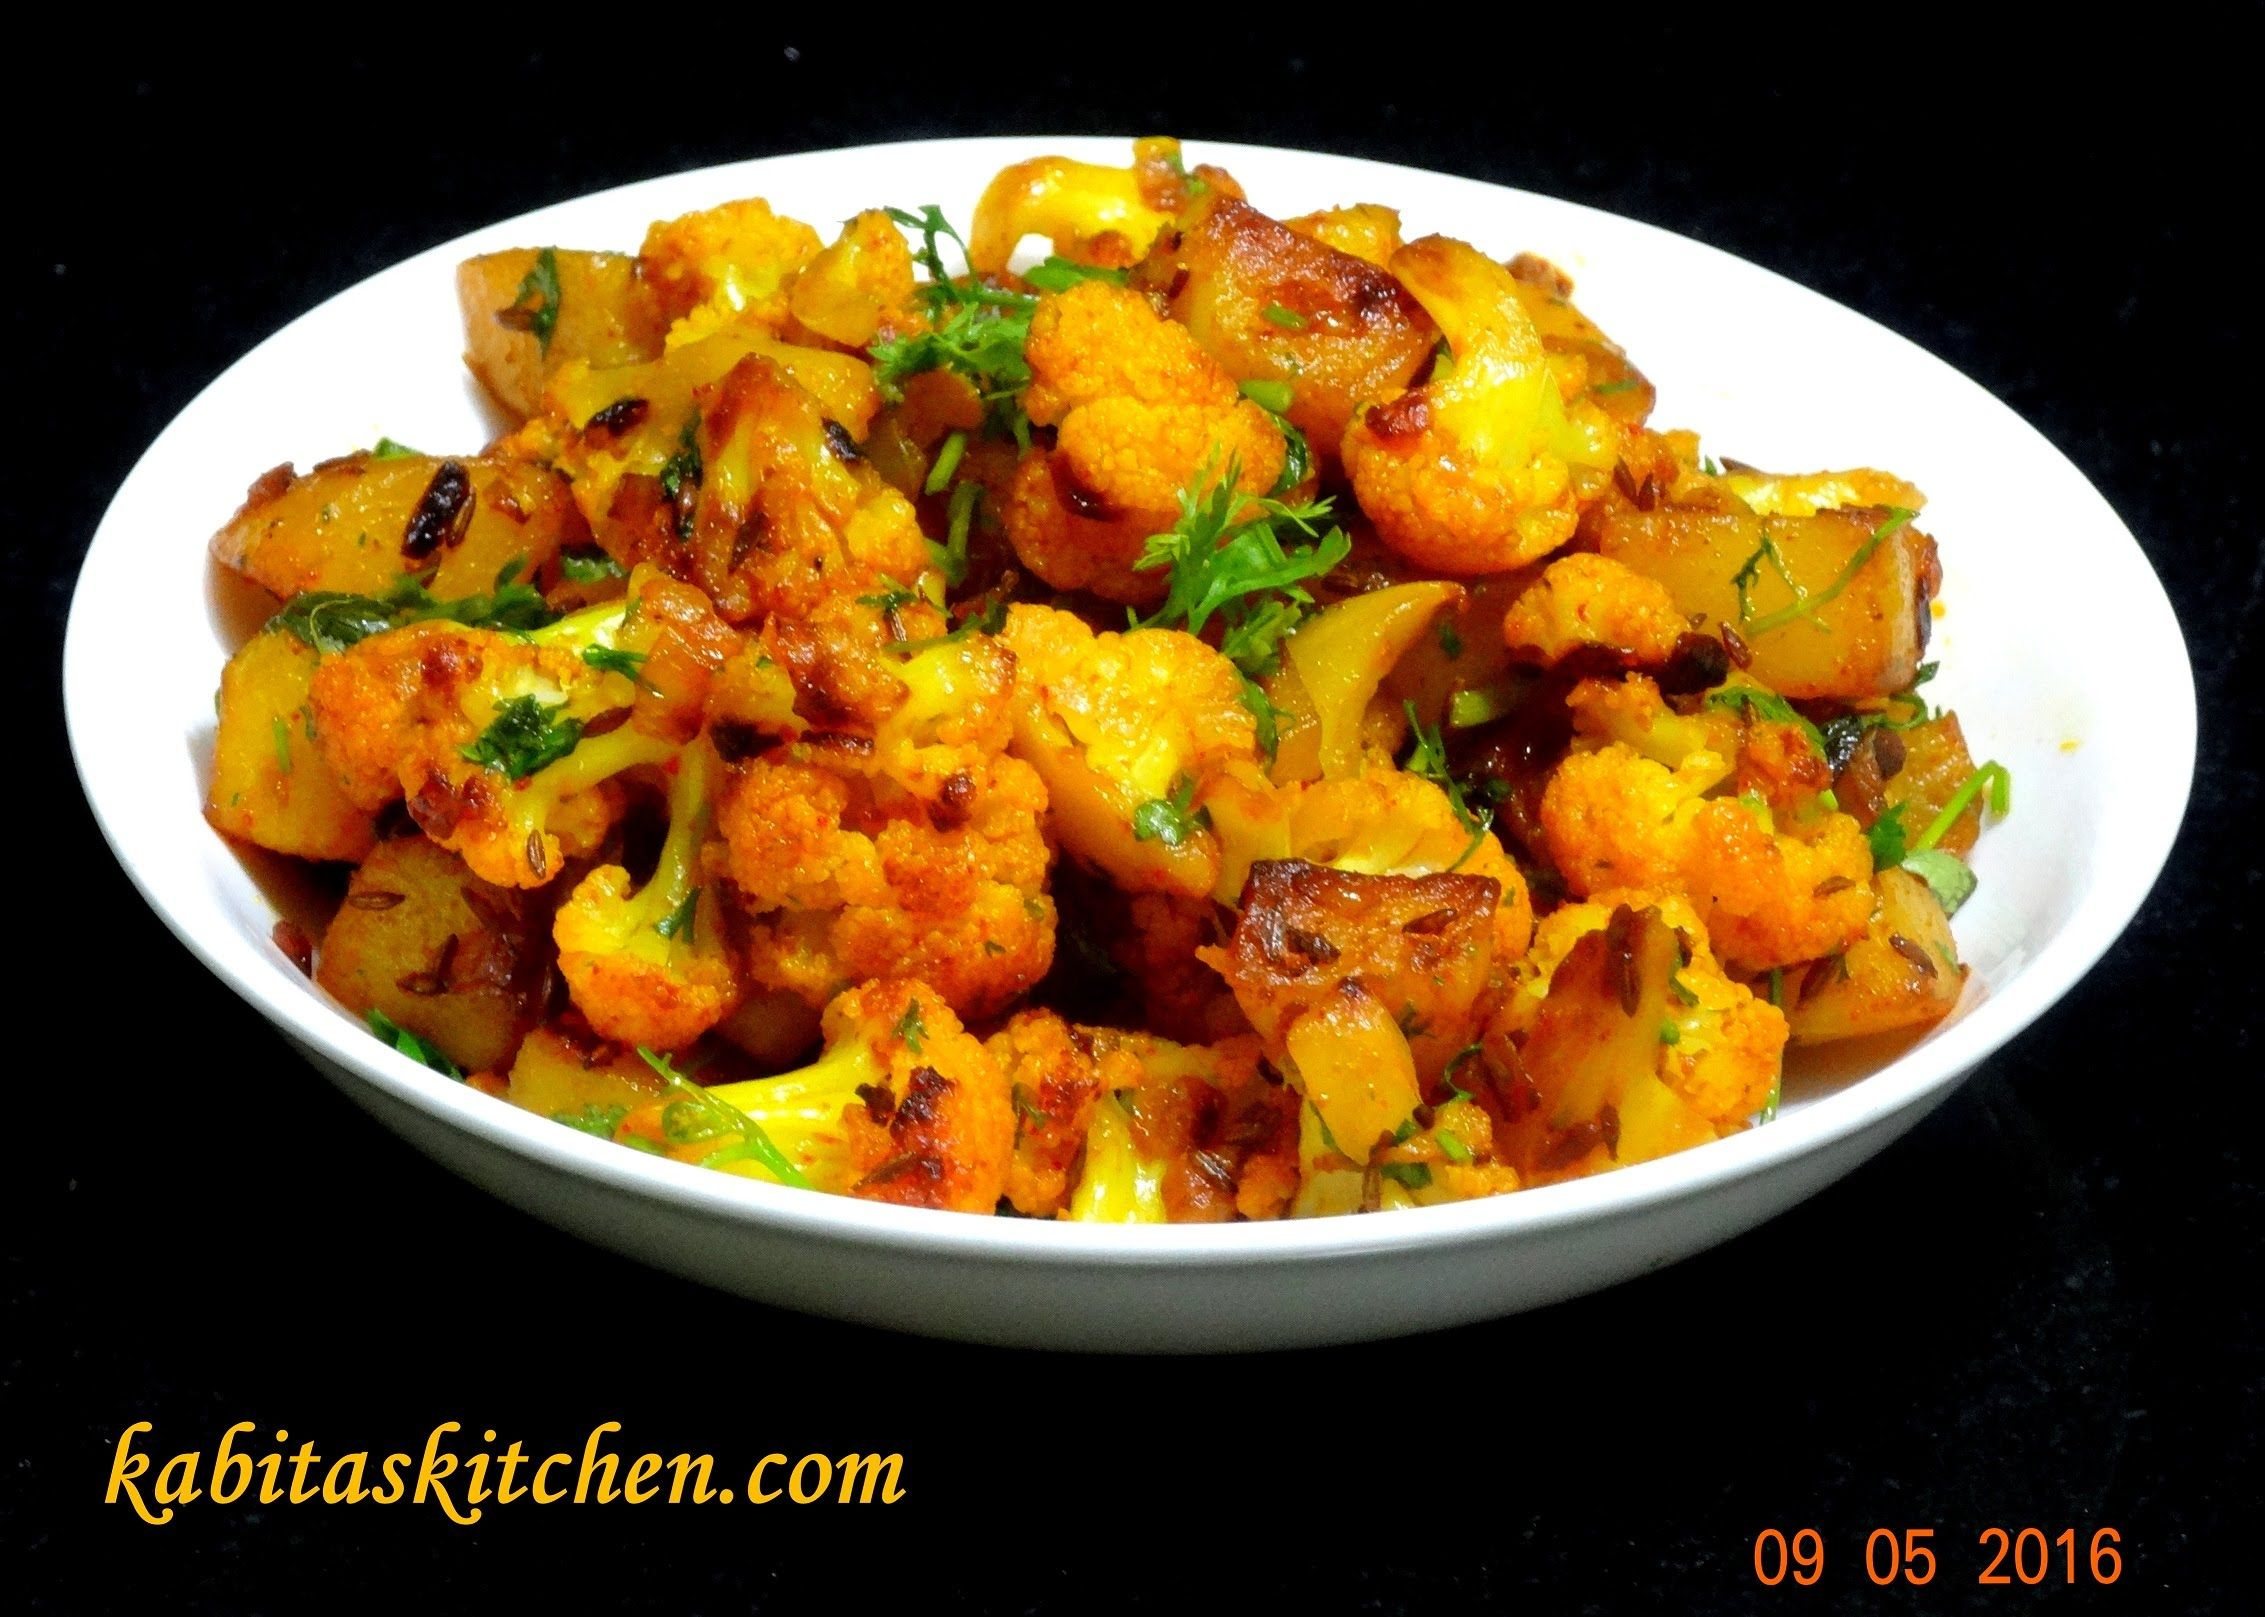 Aloo gobi recipe simple and easy aloo gobhi for lunch box aloo gobi recipe simple and easy aloo gobhi for lunch box cauliflower an forumfinder Gallery